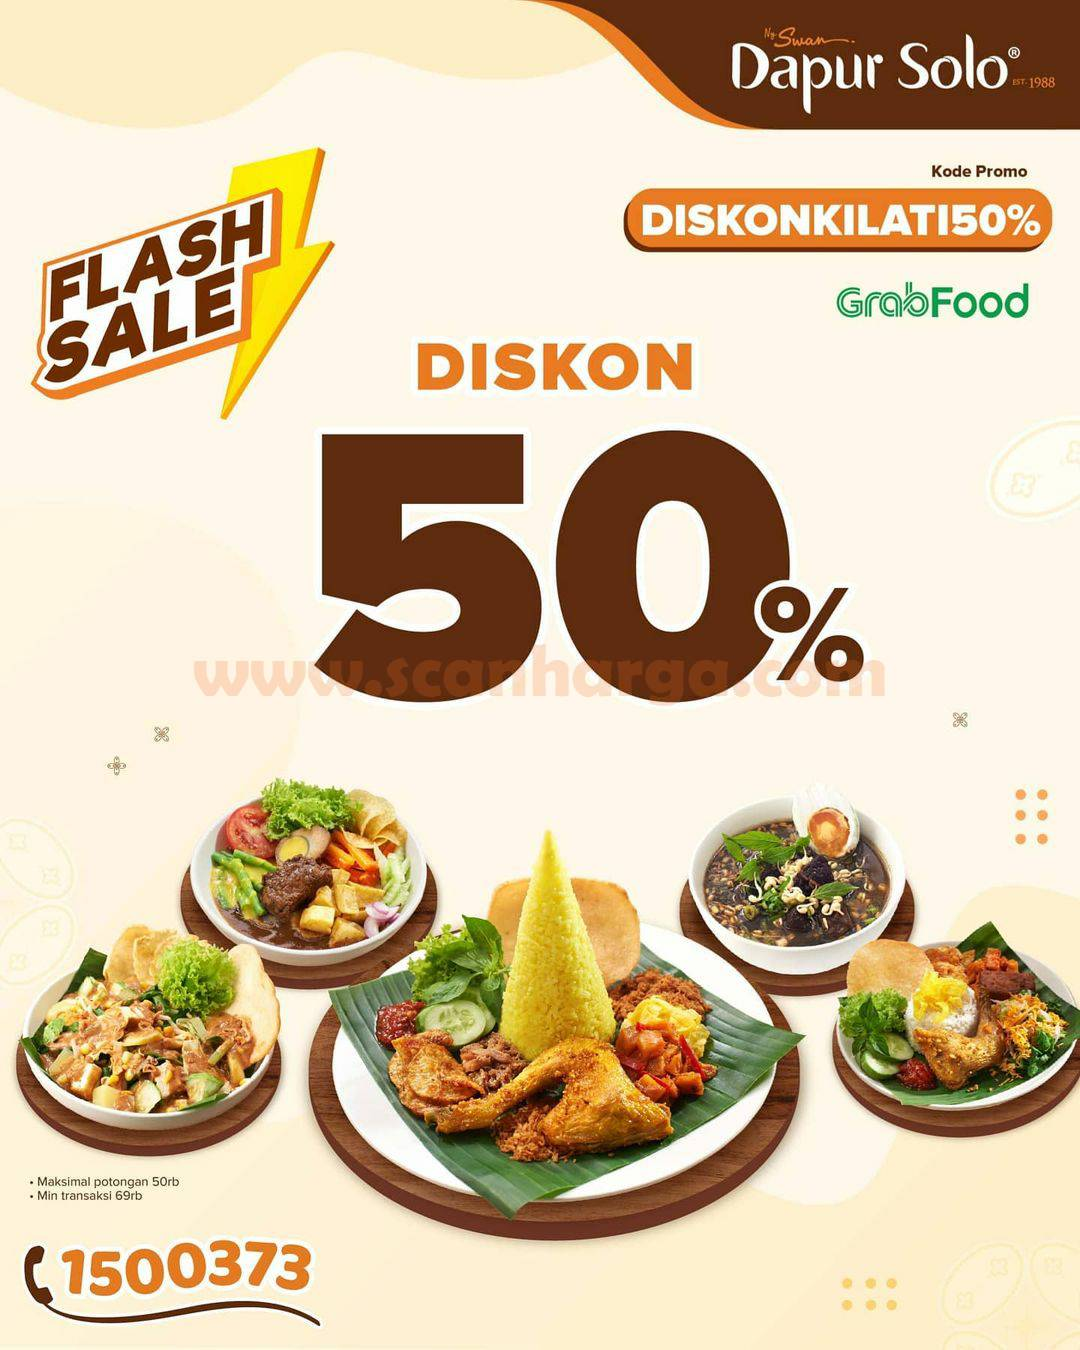 DAPUR SOLO Promo FLASH SALE – DISKON 50% via GRABFOOD